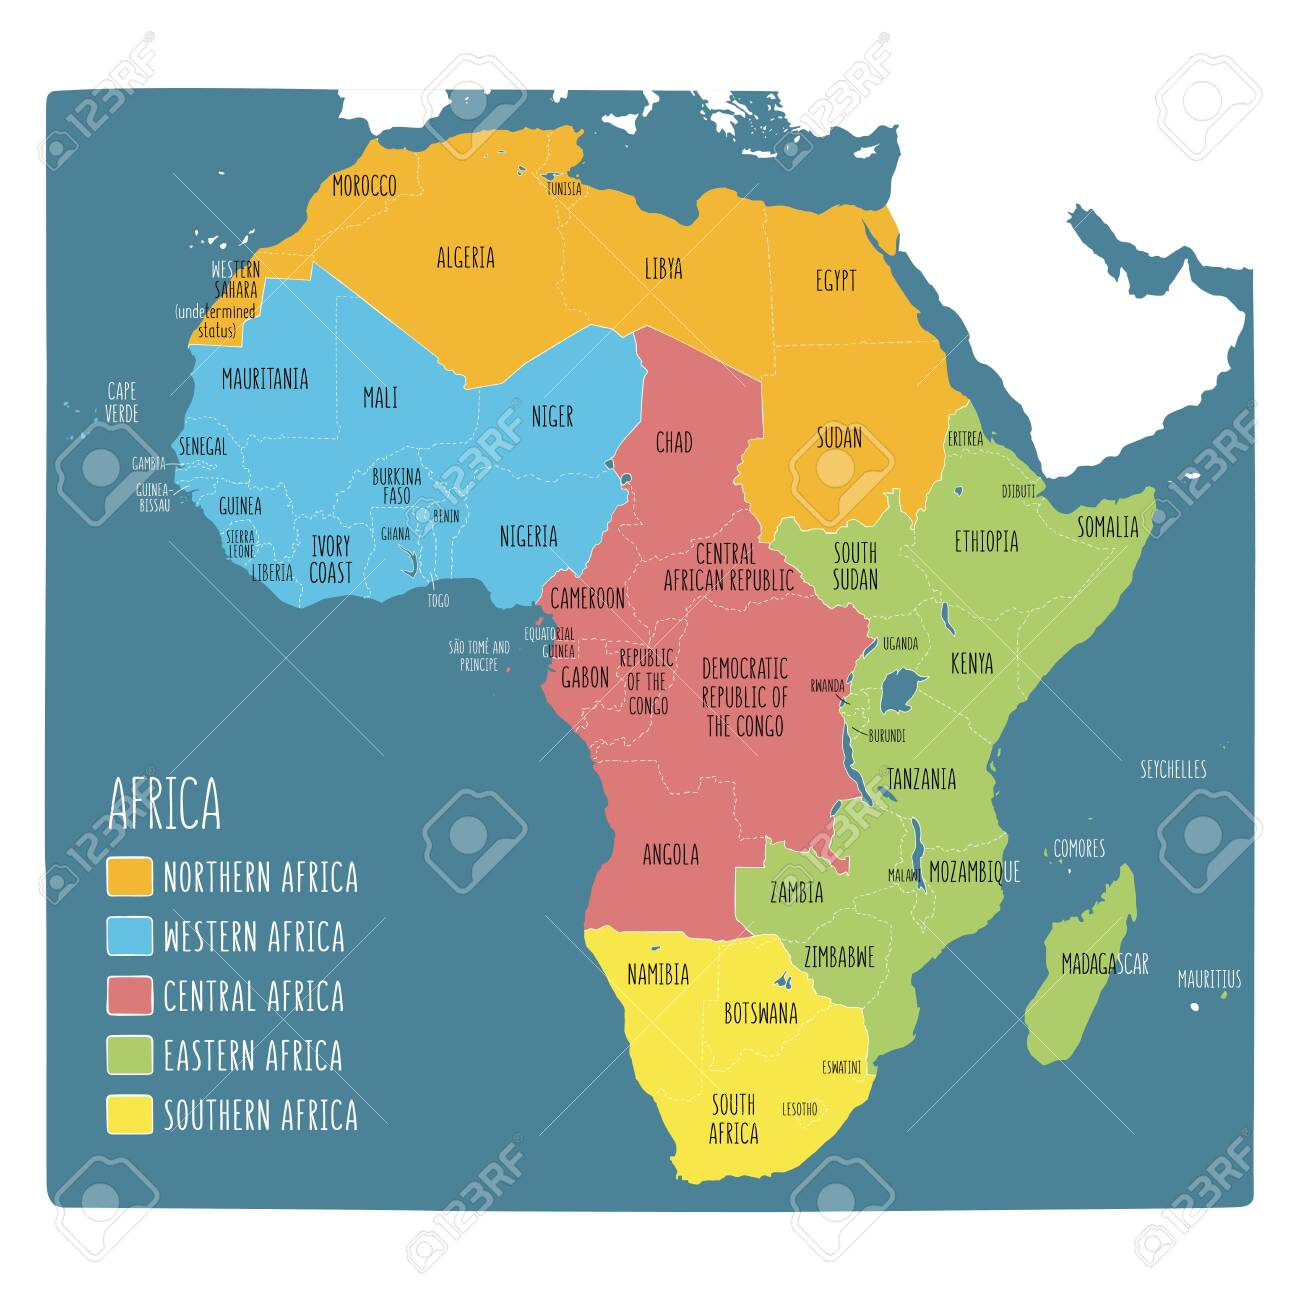 Regions Map Of Africa Vector Political Map Of Africa. 5 Regions Of Africa. Colorful